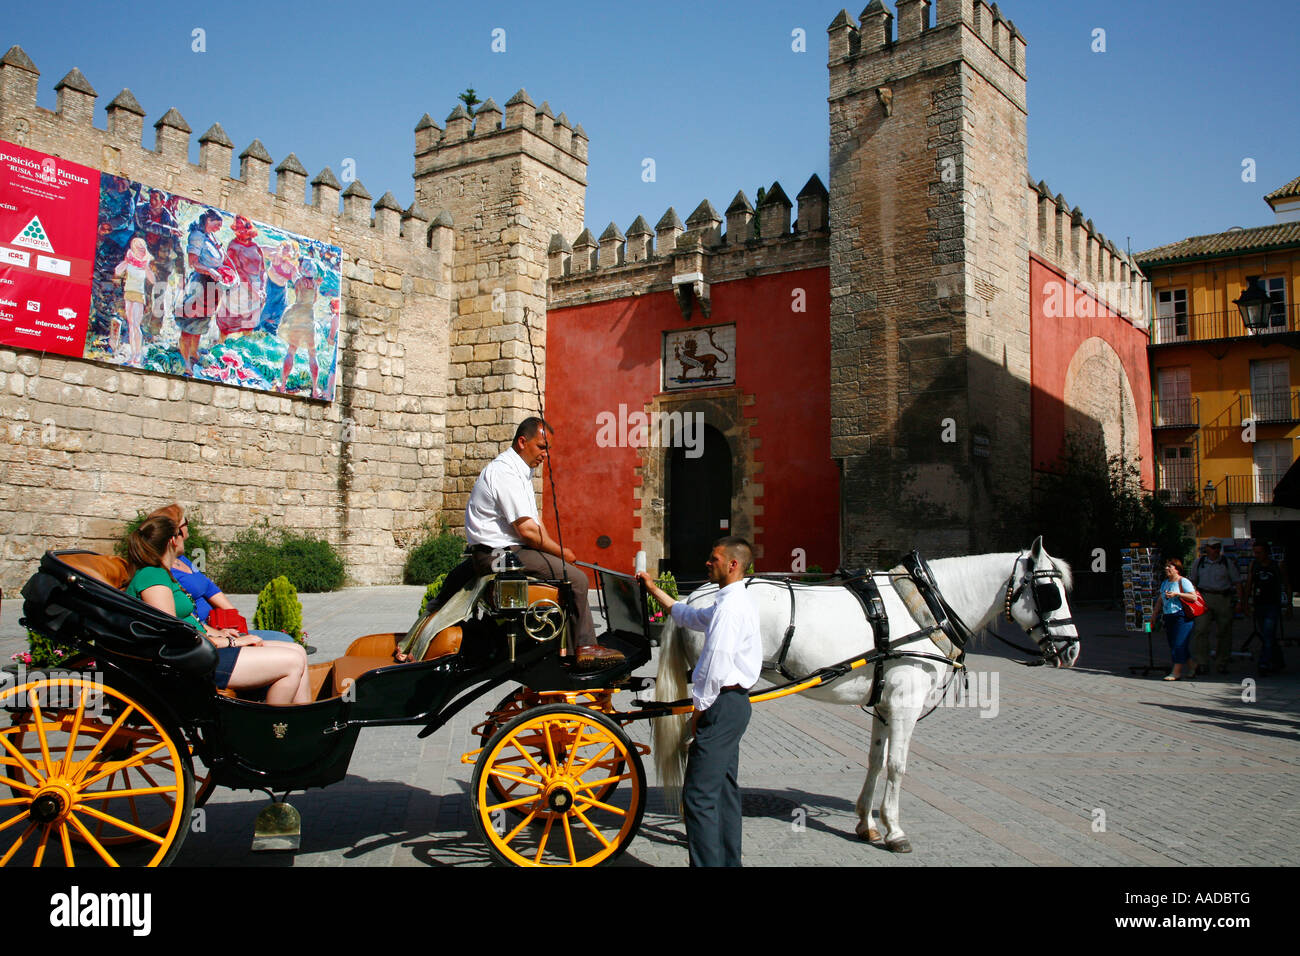 people sitting on a horse drawn carriage in front of the Alcazar Seville Spain - Stock Image